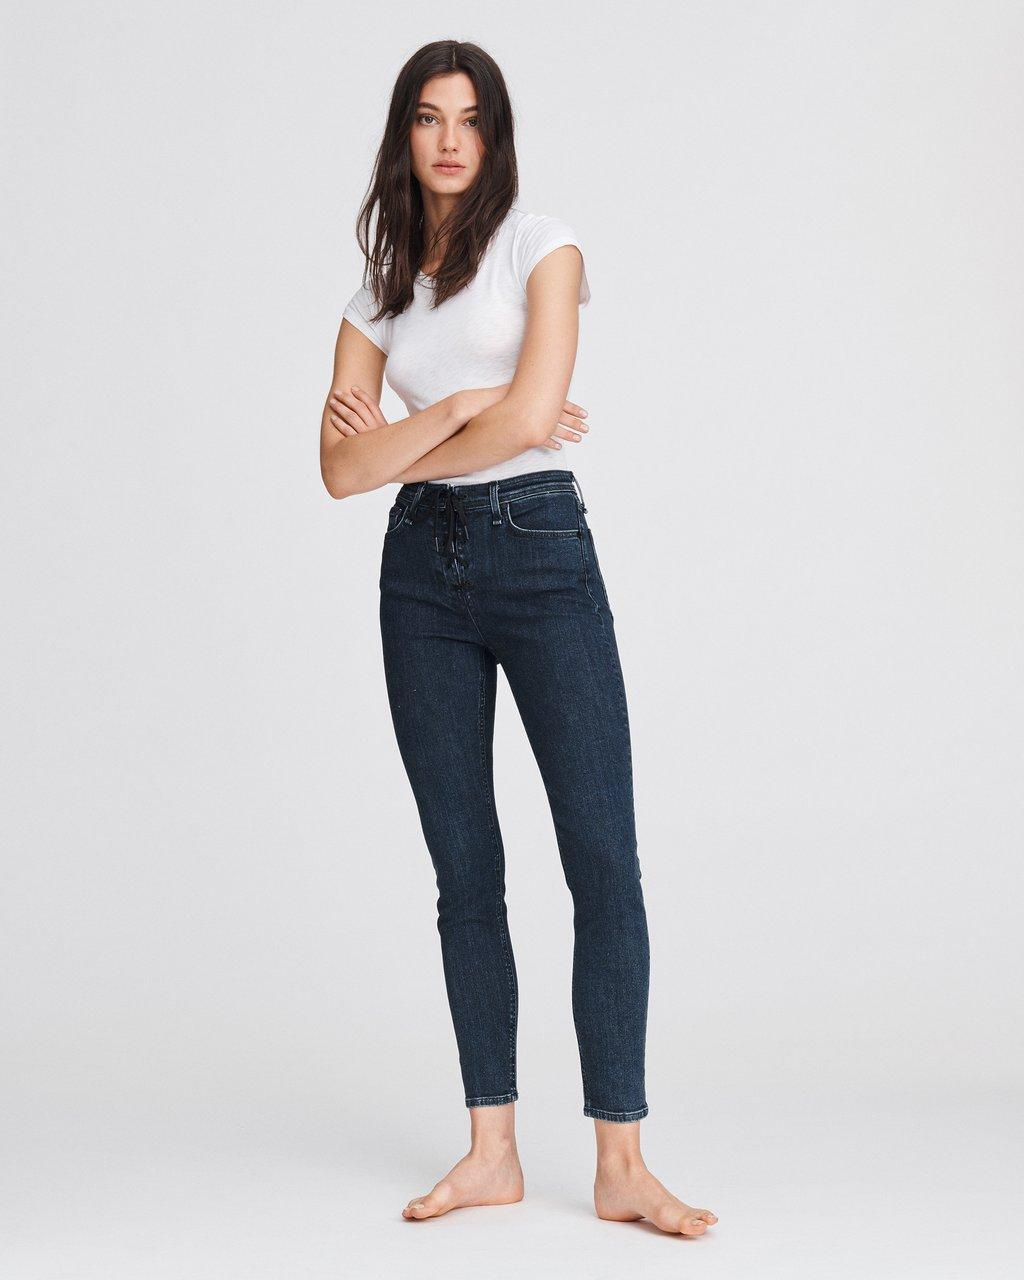 NINA HIGH-RISE ANKLE SKINNY WITH LACE UP